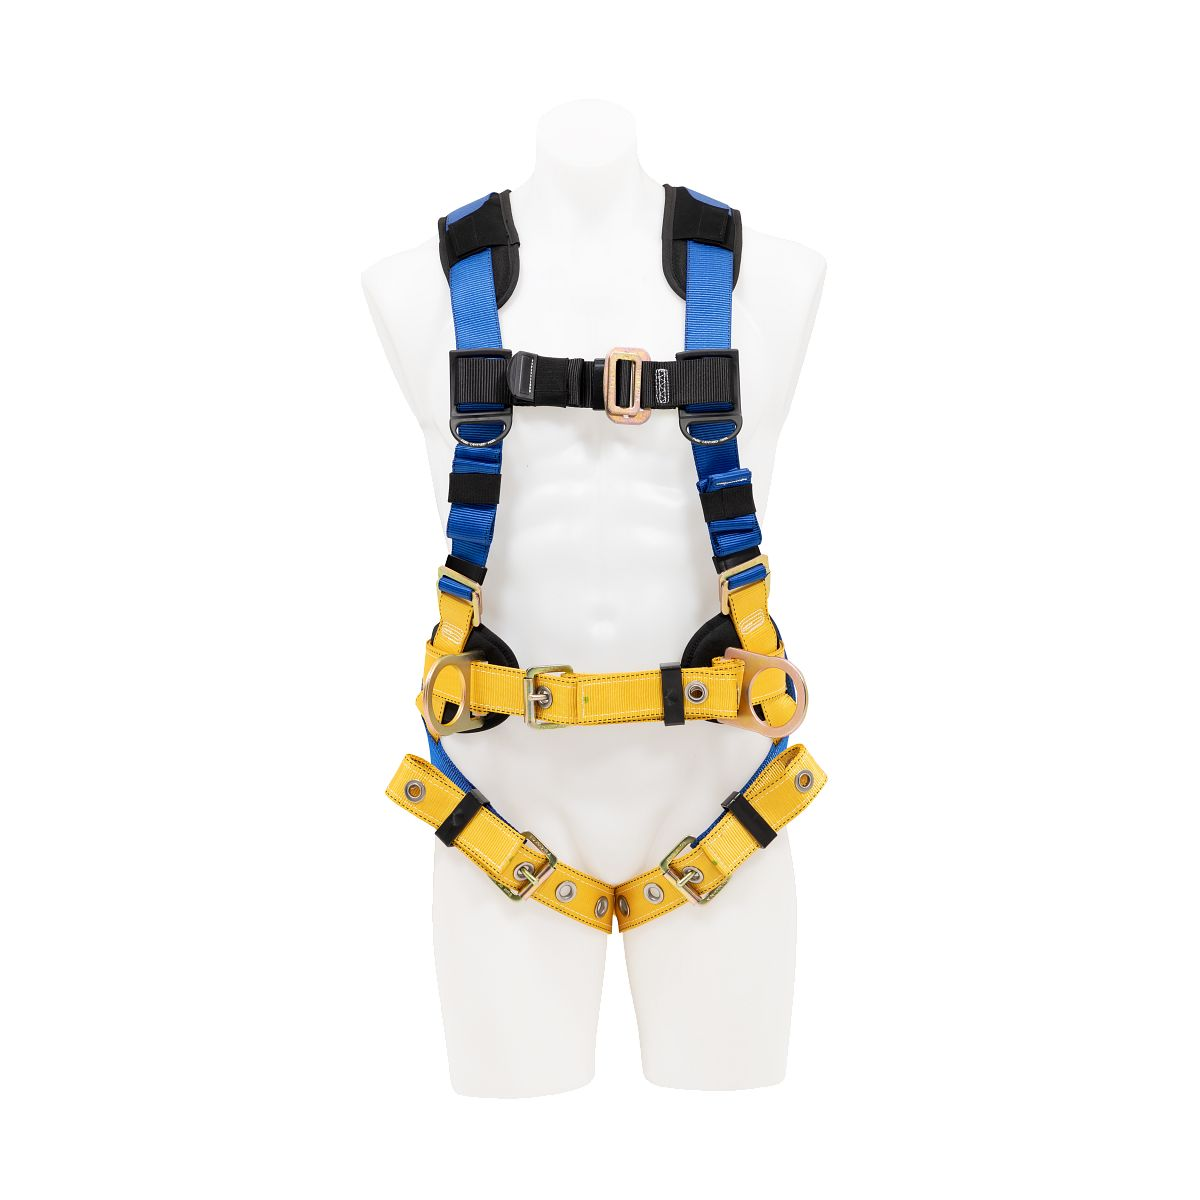 Werner, Litefit Const. Harness, Tongue/Buck Legs, 2X